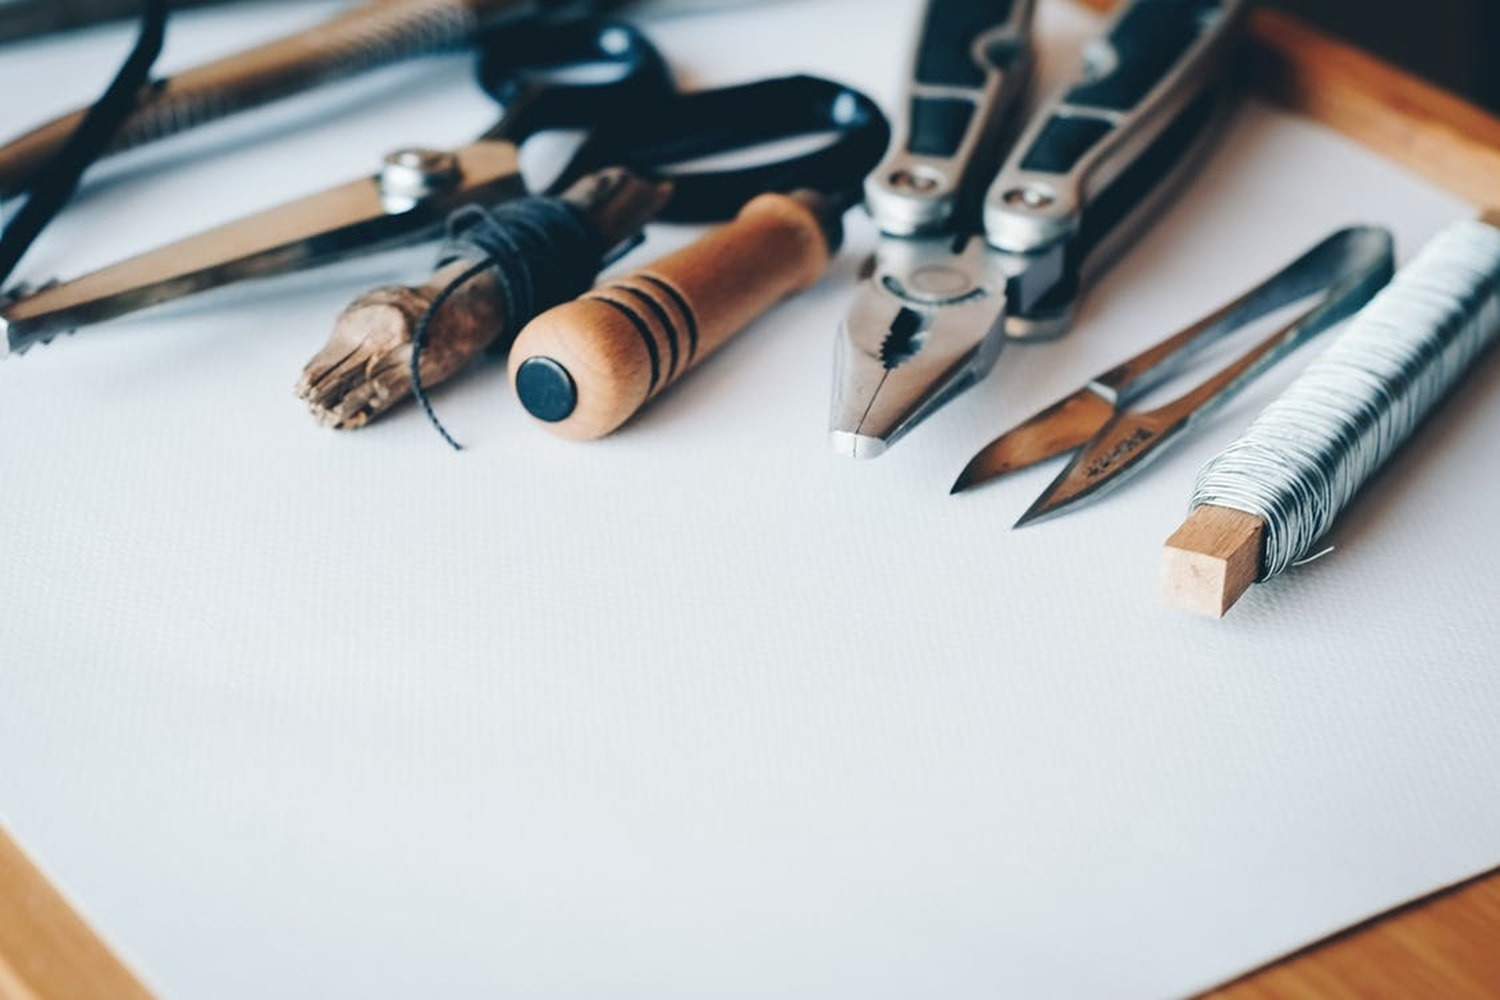 What essentials do you need in your DIY toolbox